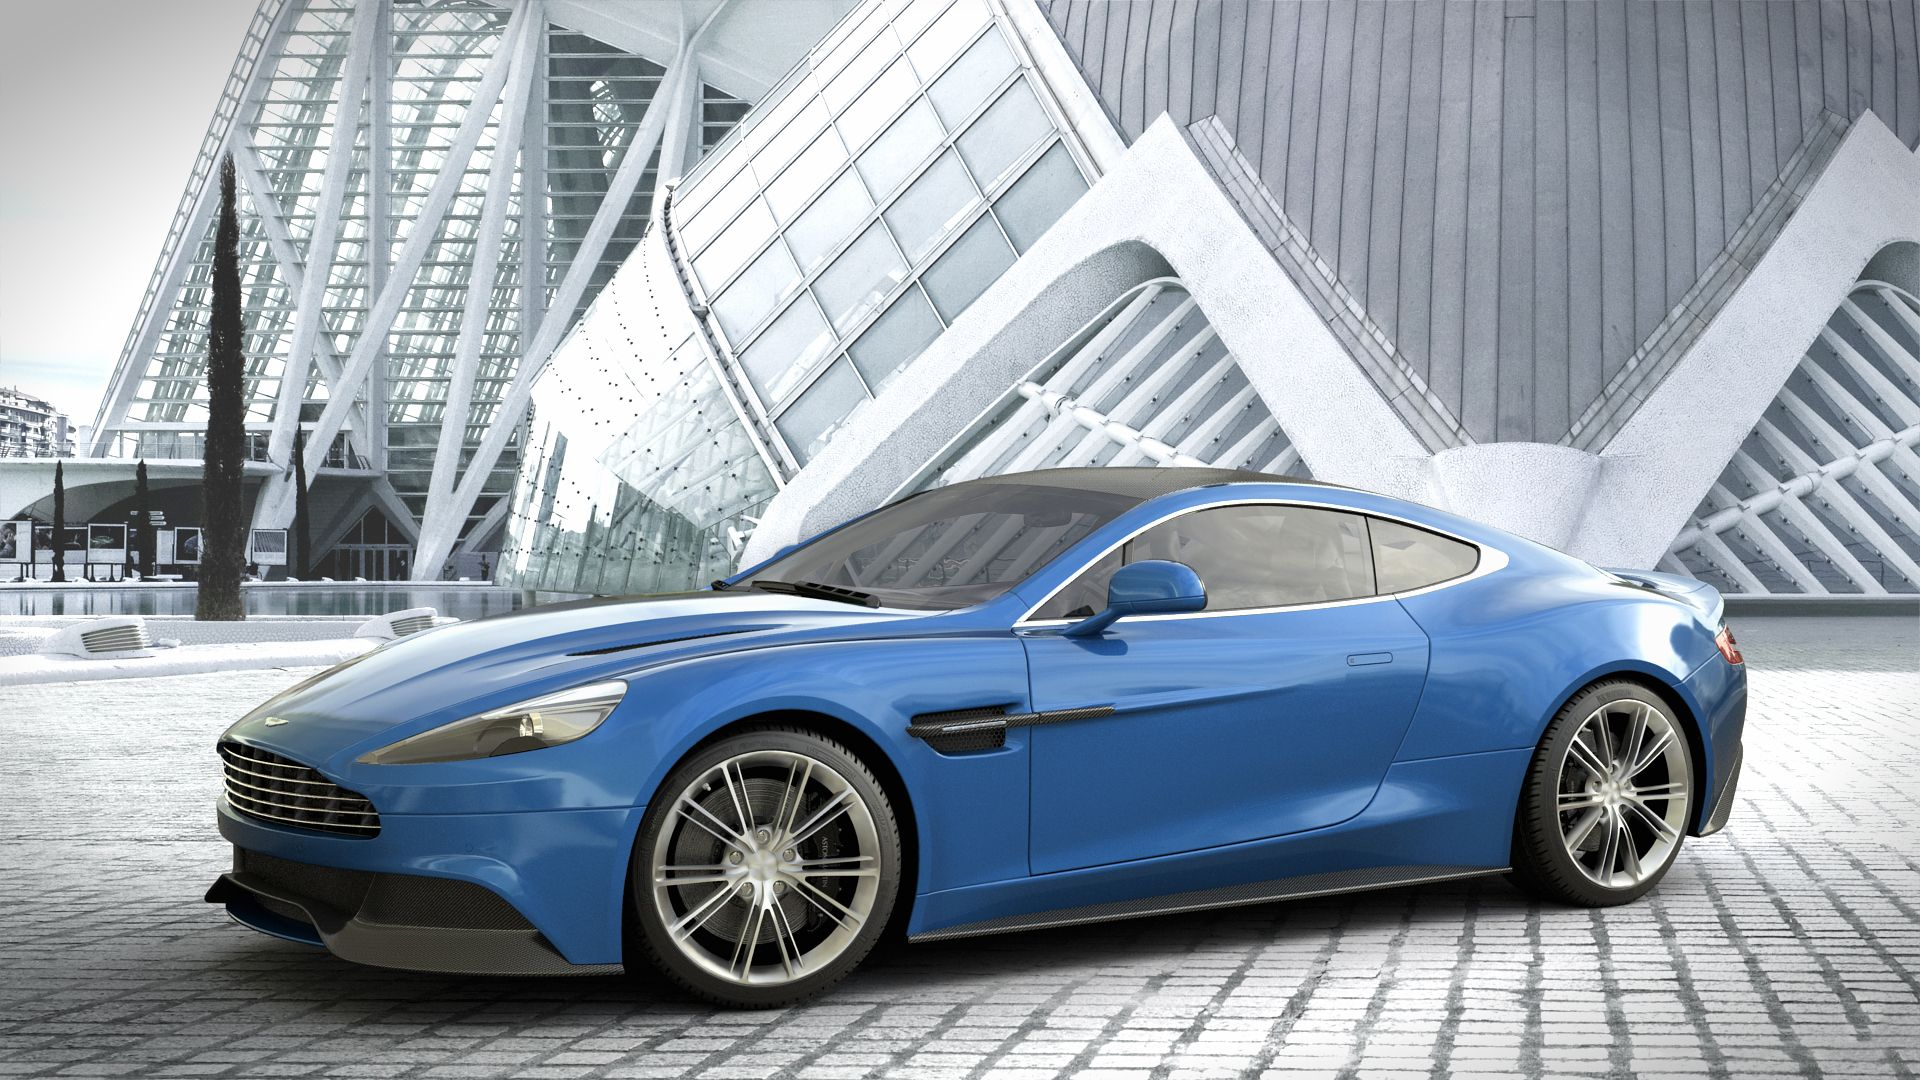 Bon Aston Martin Vanquish Wallpaper Images #0CW | Cars | Pinterest | Aston  Martin, Wallpaper And Mac Wallpaper